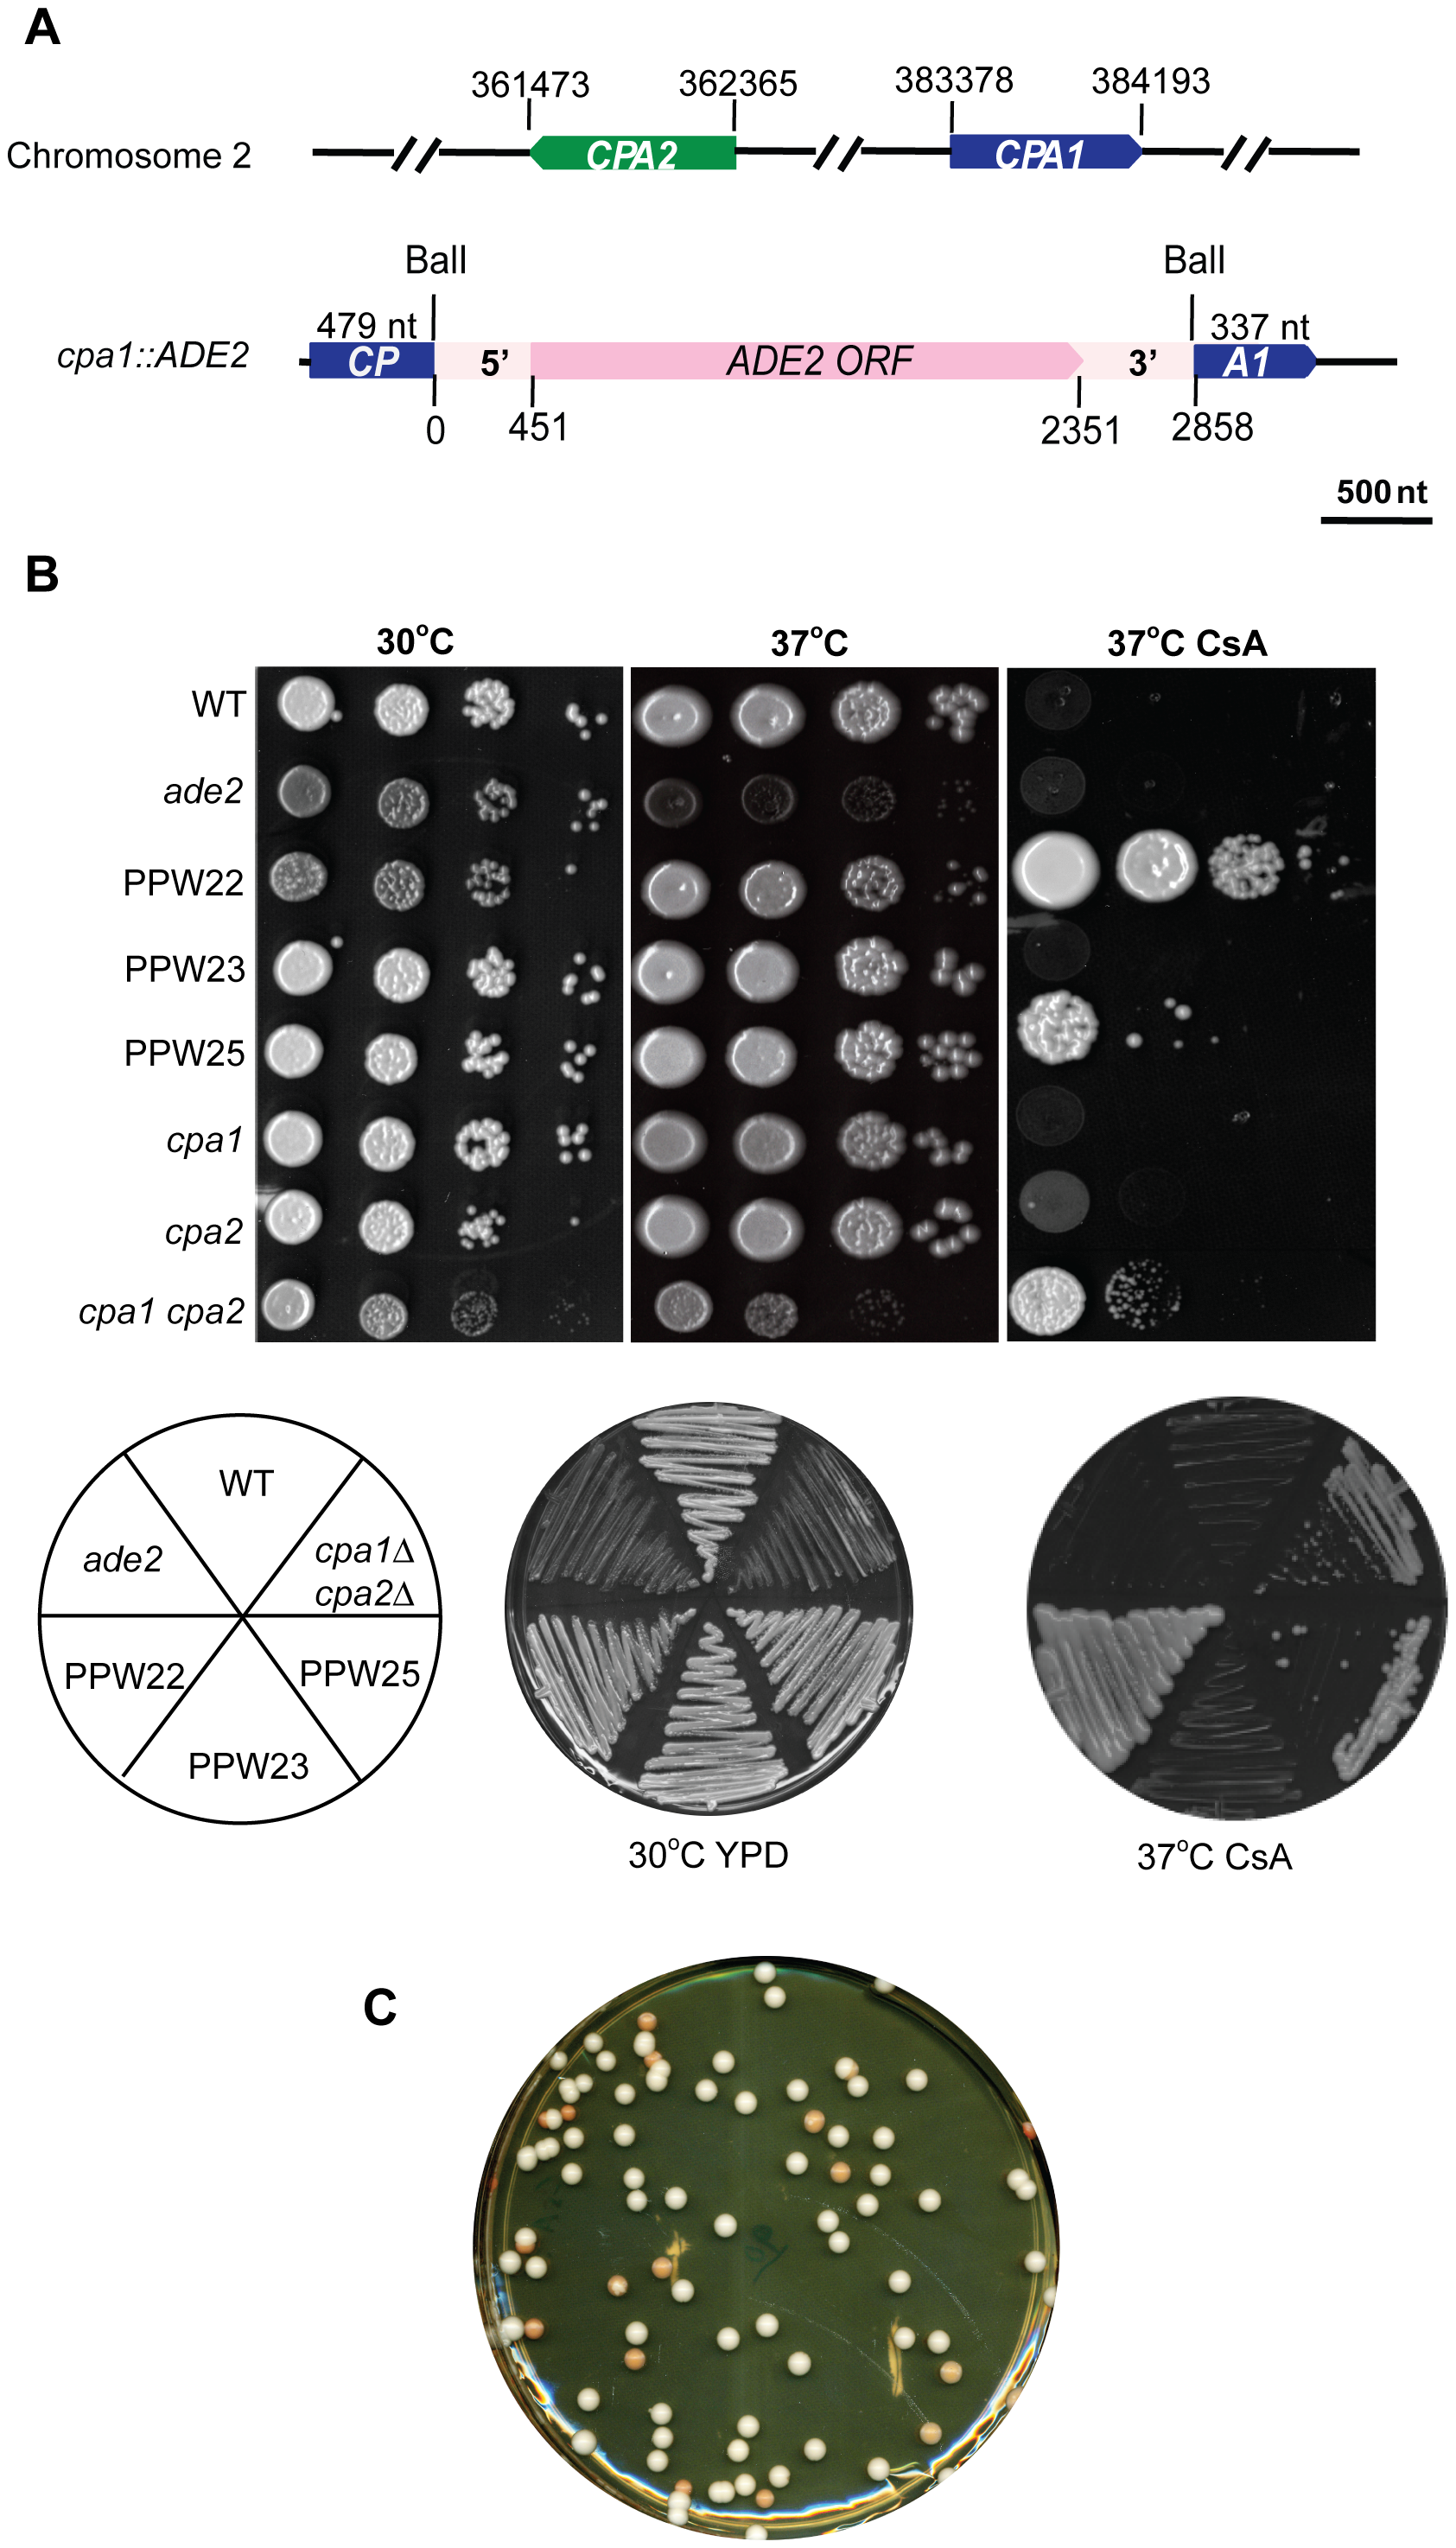 Transgene silencing results in CsA resistance and ade−, red colonies.